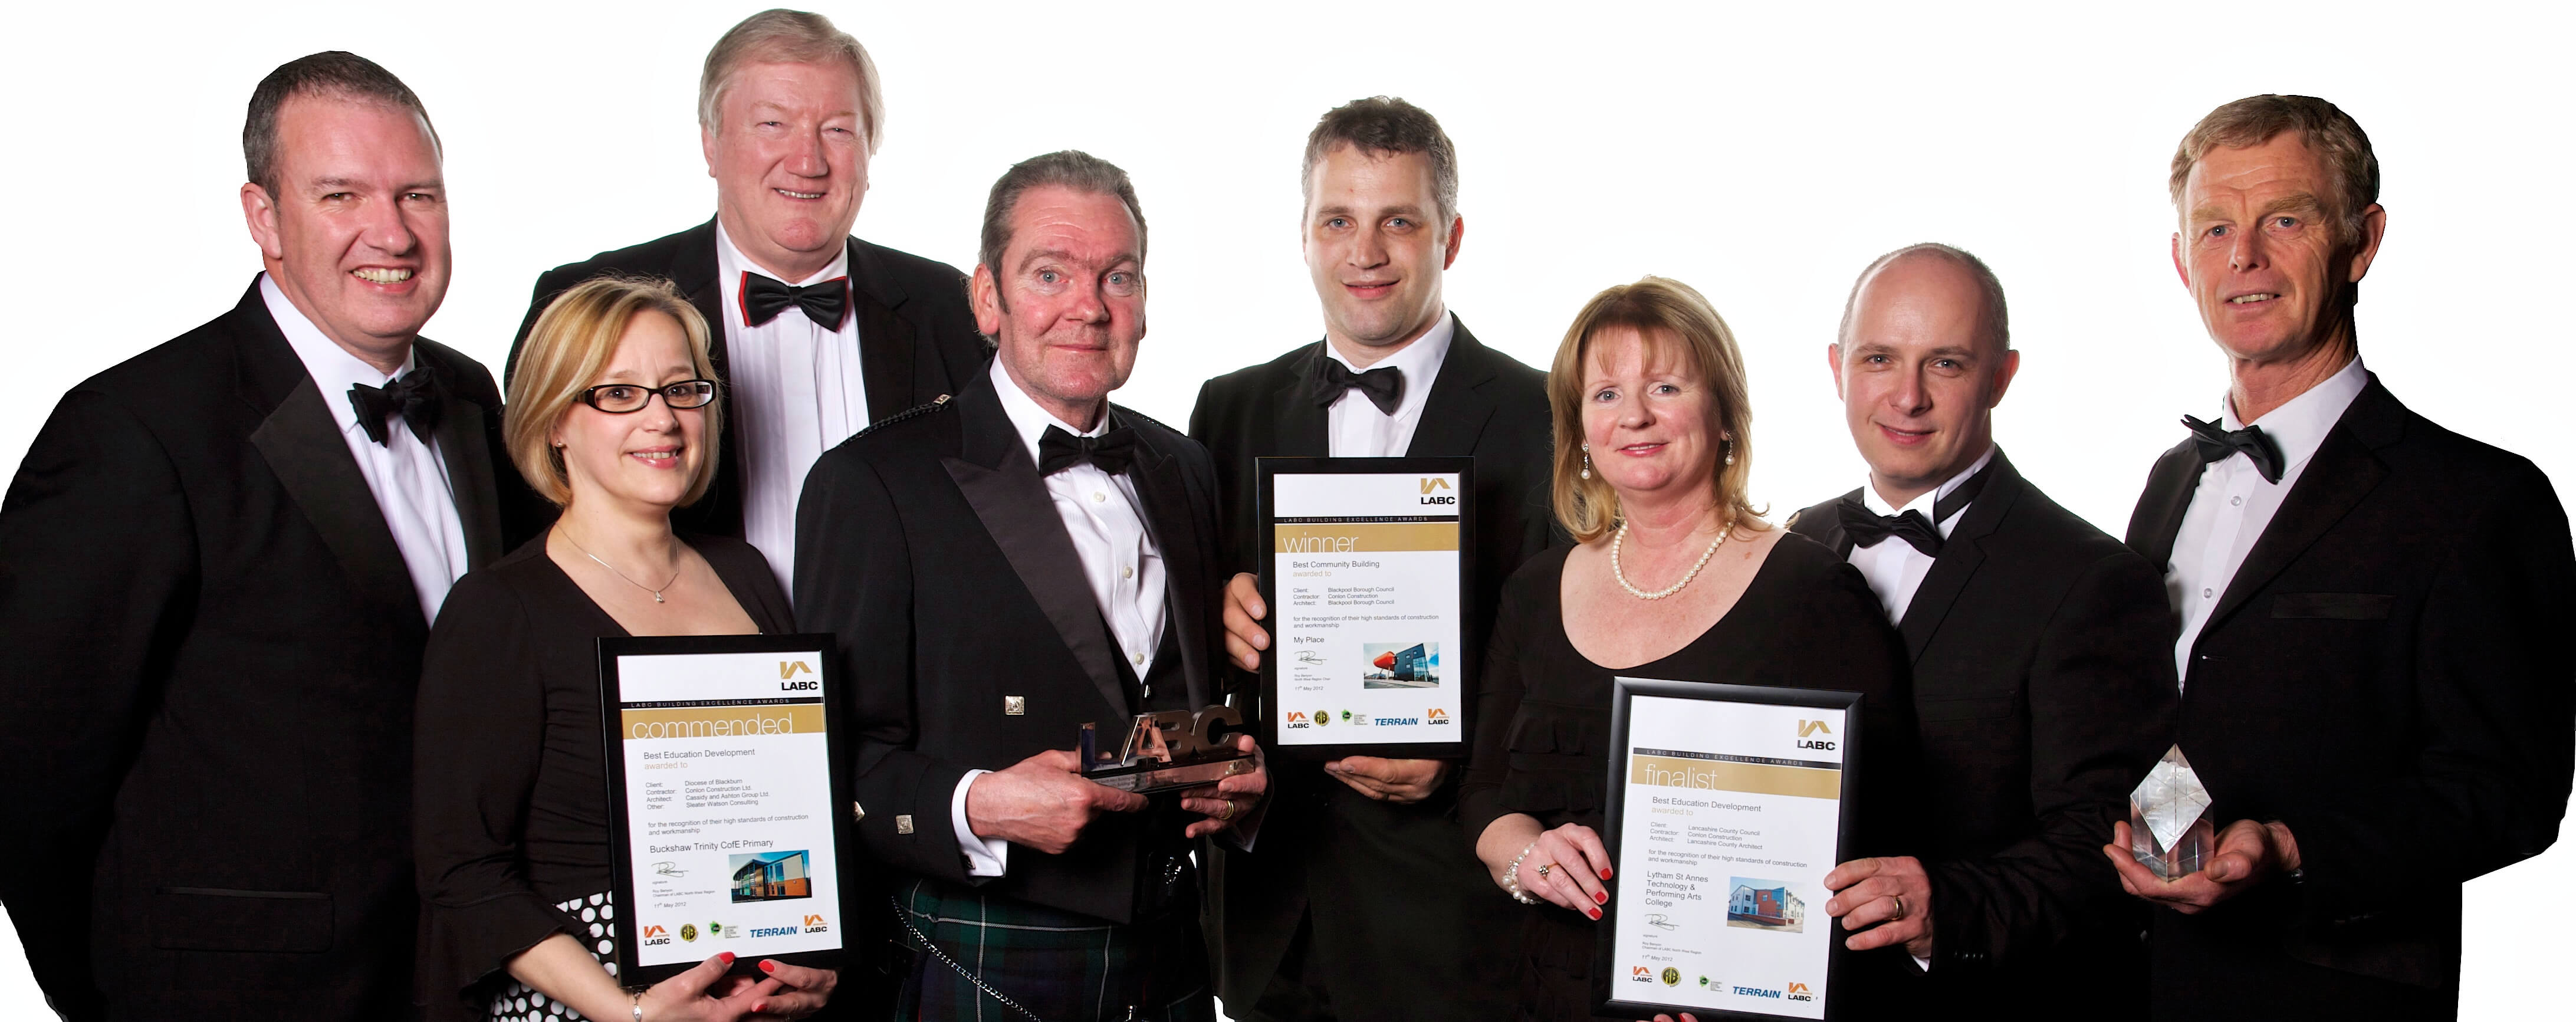 labc-built-in-quality-awards-may-2012